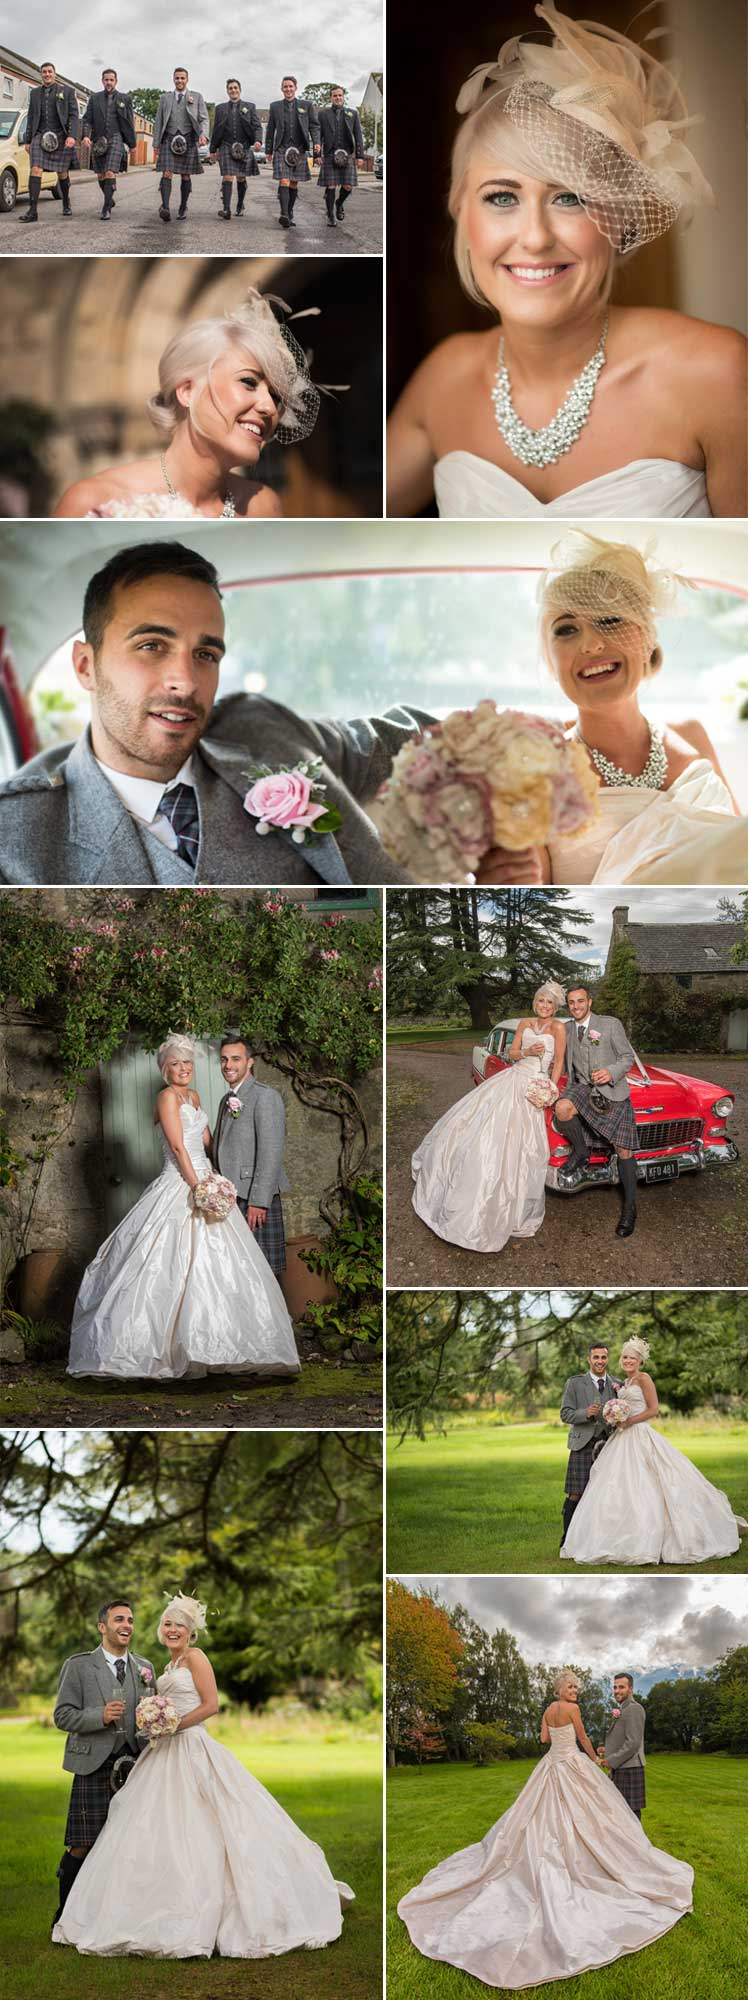 beautiful wedding images by craig ramsay